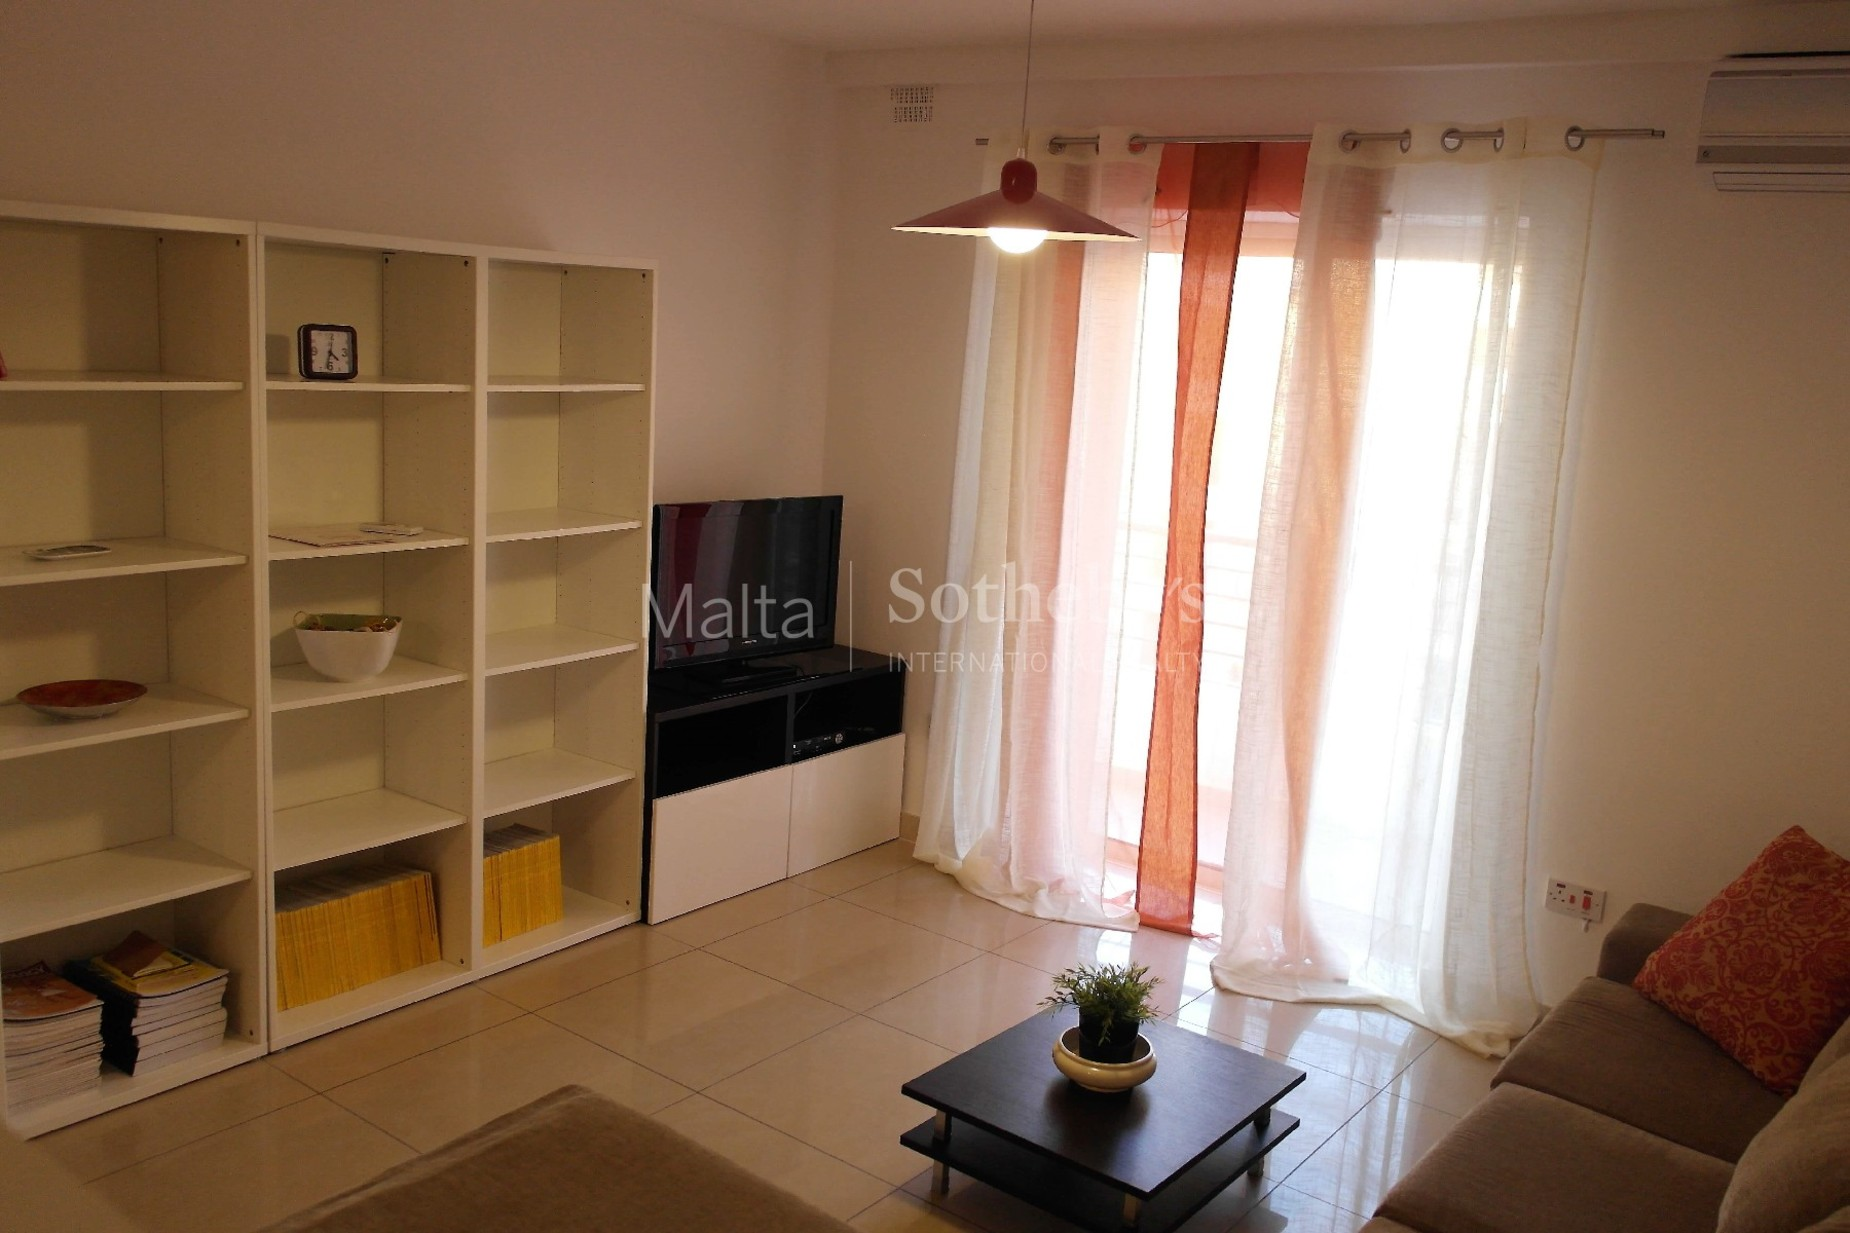 3 bed Apartment For Rent in Gzira, Gzira - thumb 4